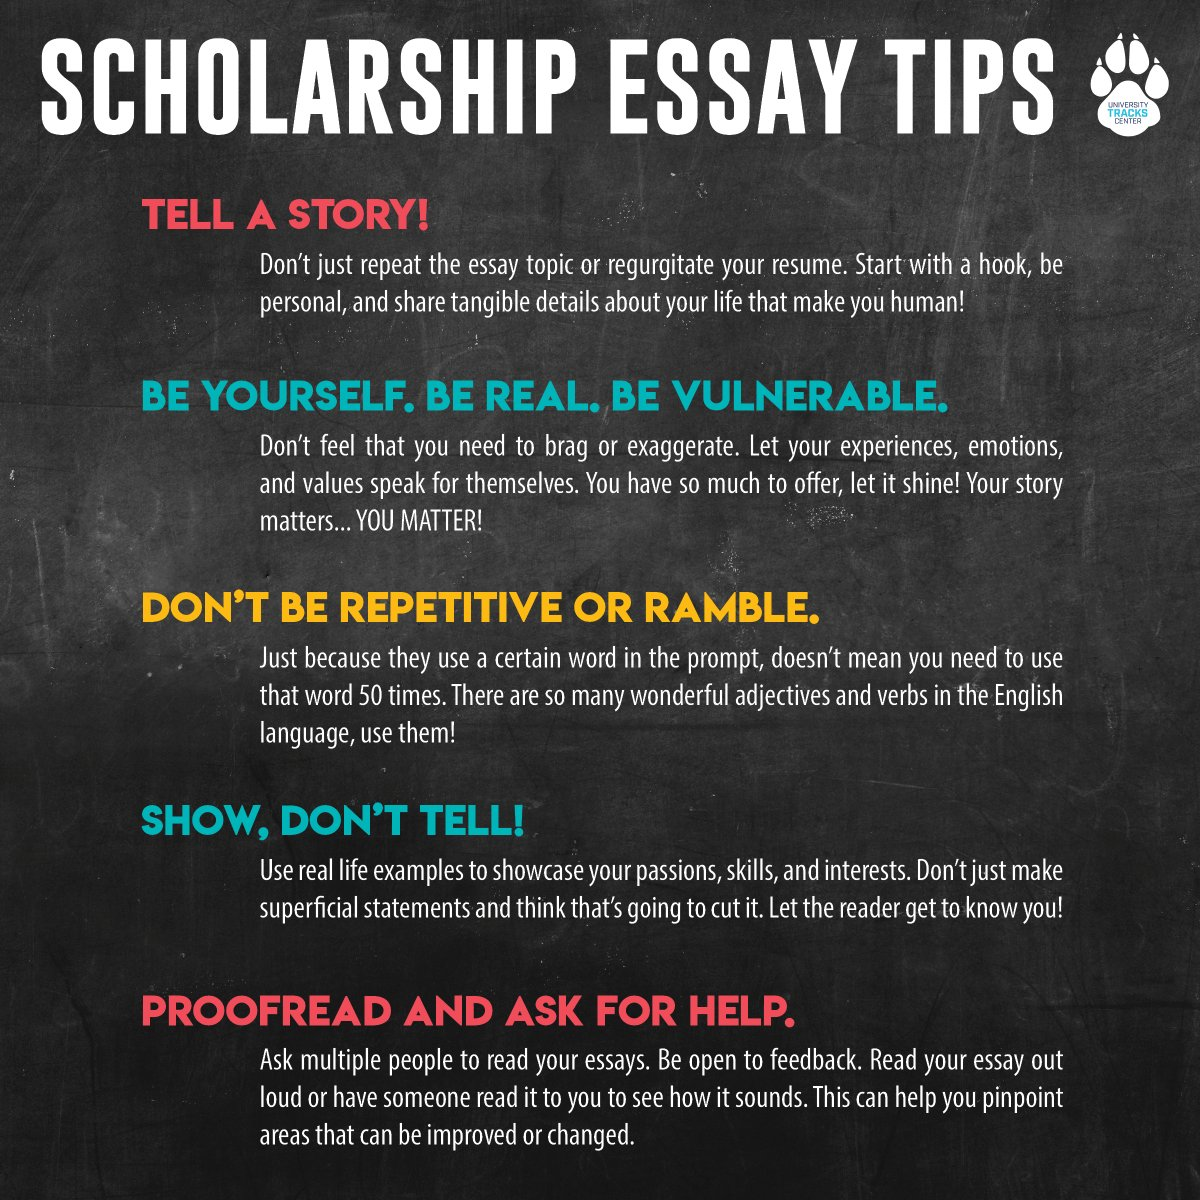 Here are a few tips to consider as you're working on your scholarship essays! #scholarships #d70 #utc #district70utc #d70tracks #pueblo #essay